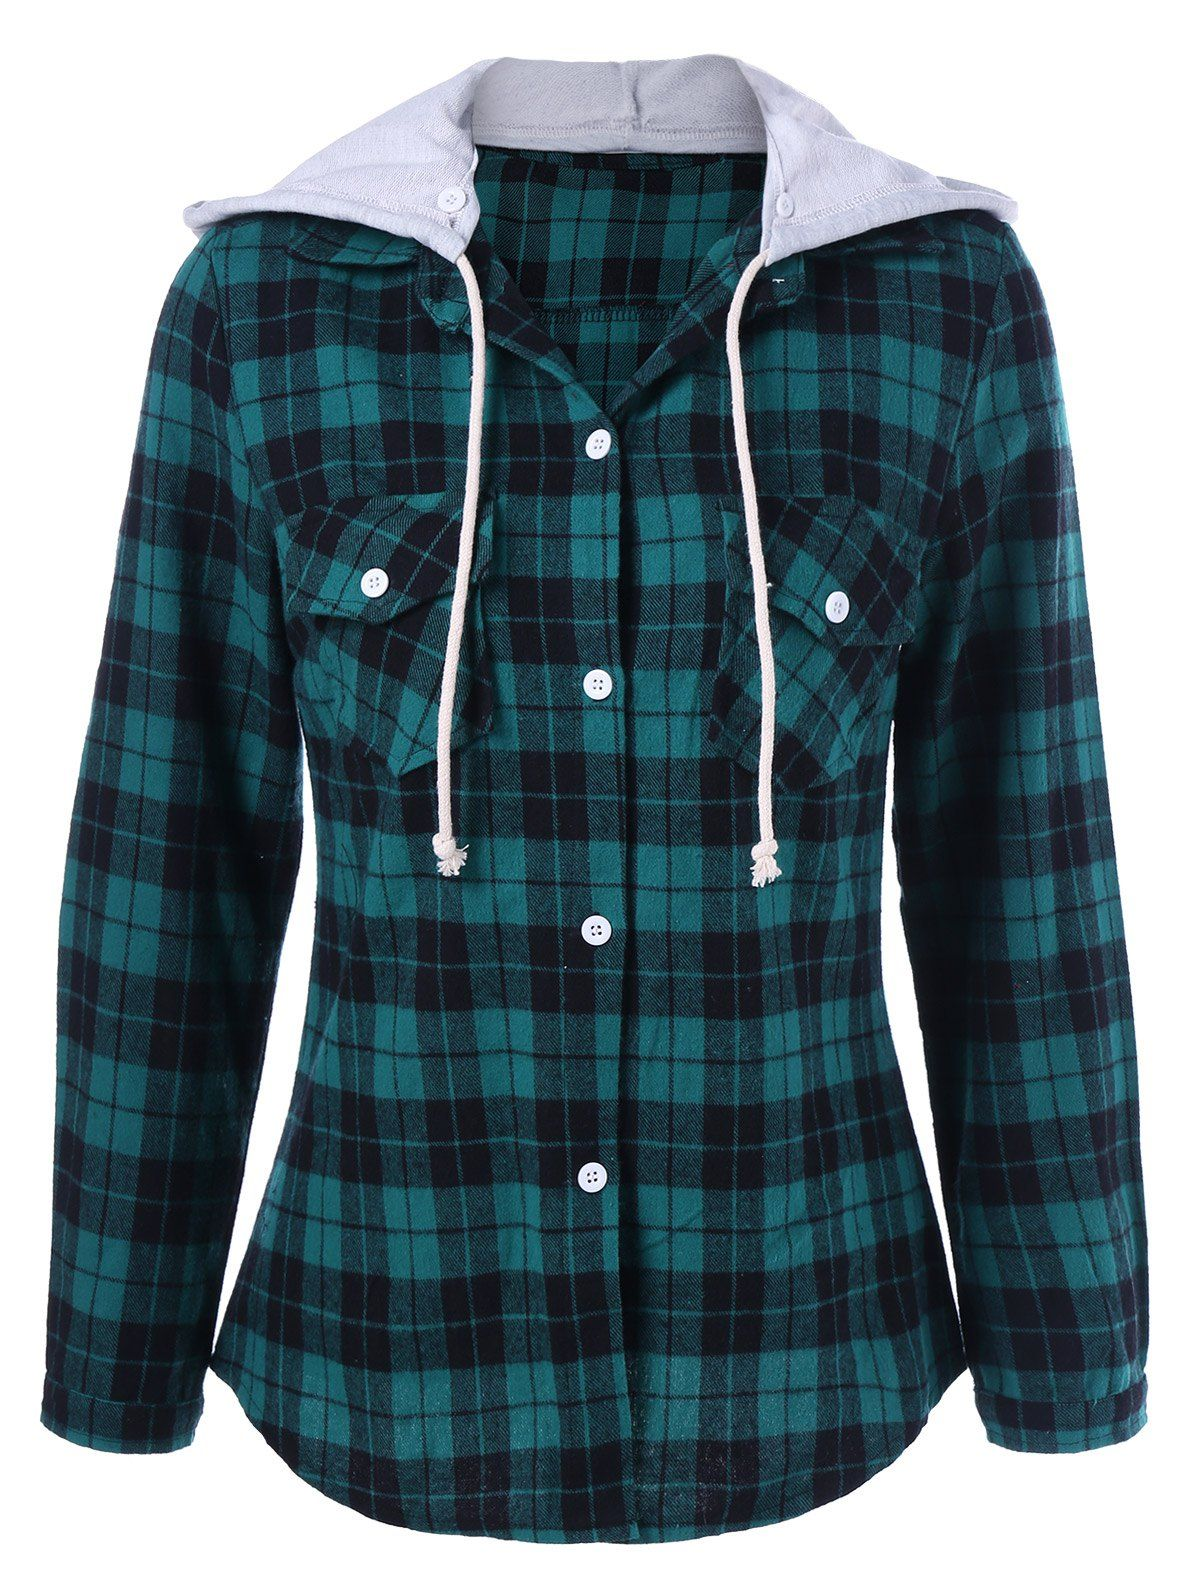 Red plaid flannel jacket  Plaid Hooded Flannel Shirt Hoodie  Green  xl  Plaid Hooded